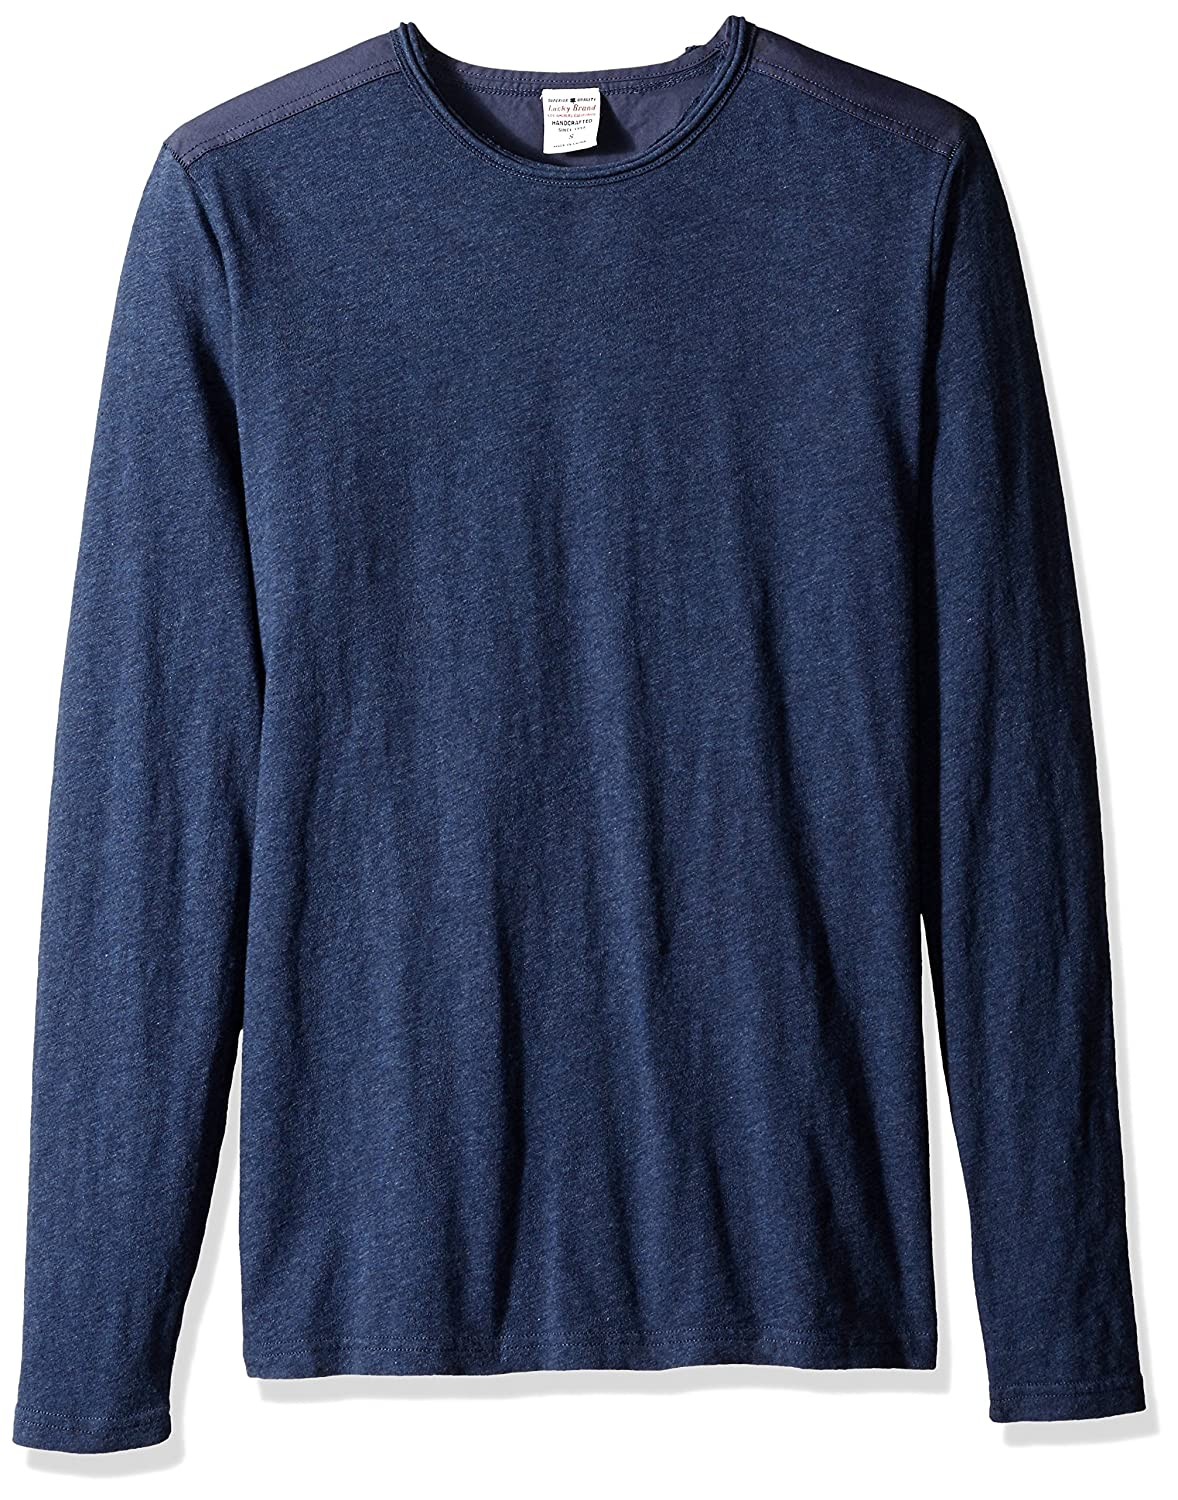 Lucky Brand Mens Long Sleeve Crewneck in Navy Small Lucky Brand Men/'s Collection 7M61629